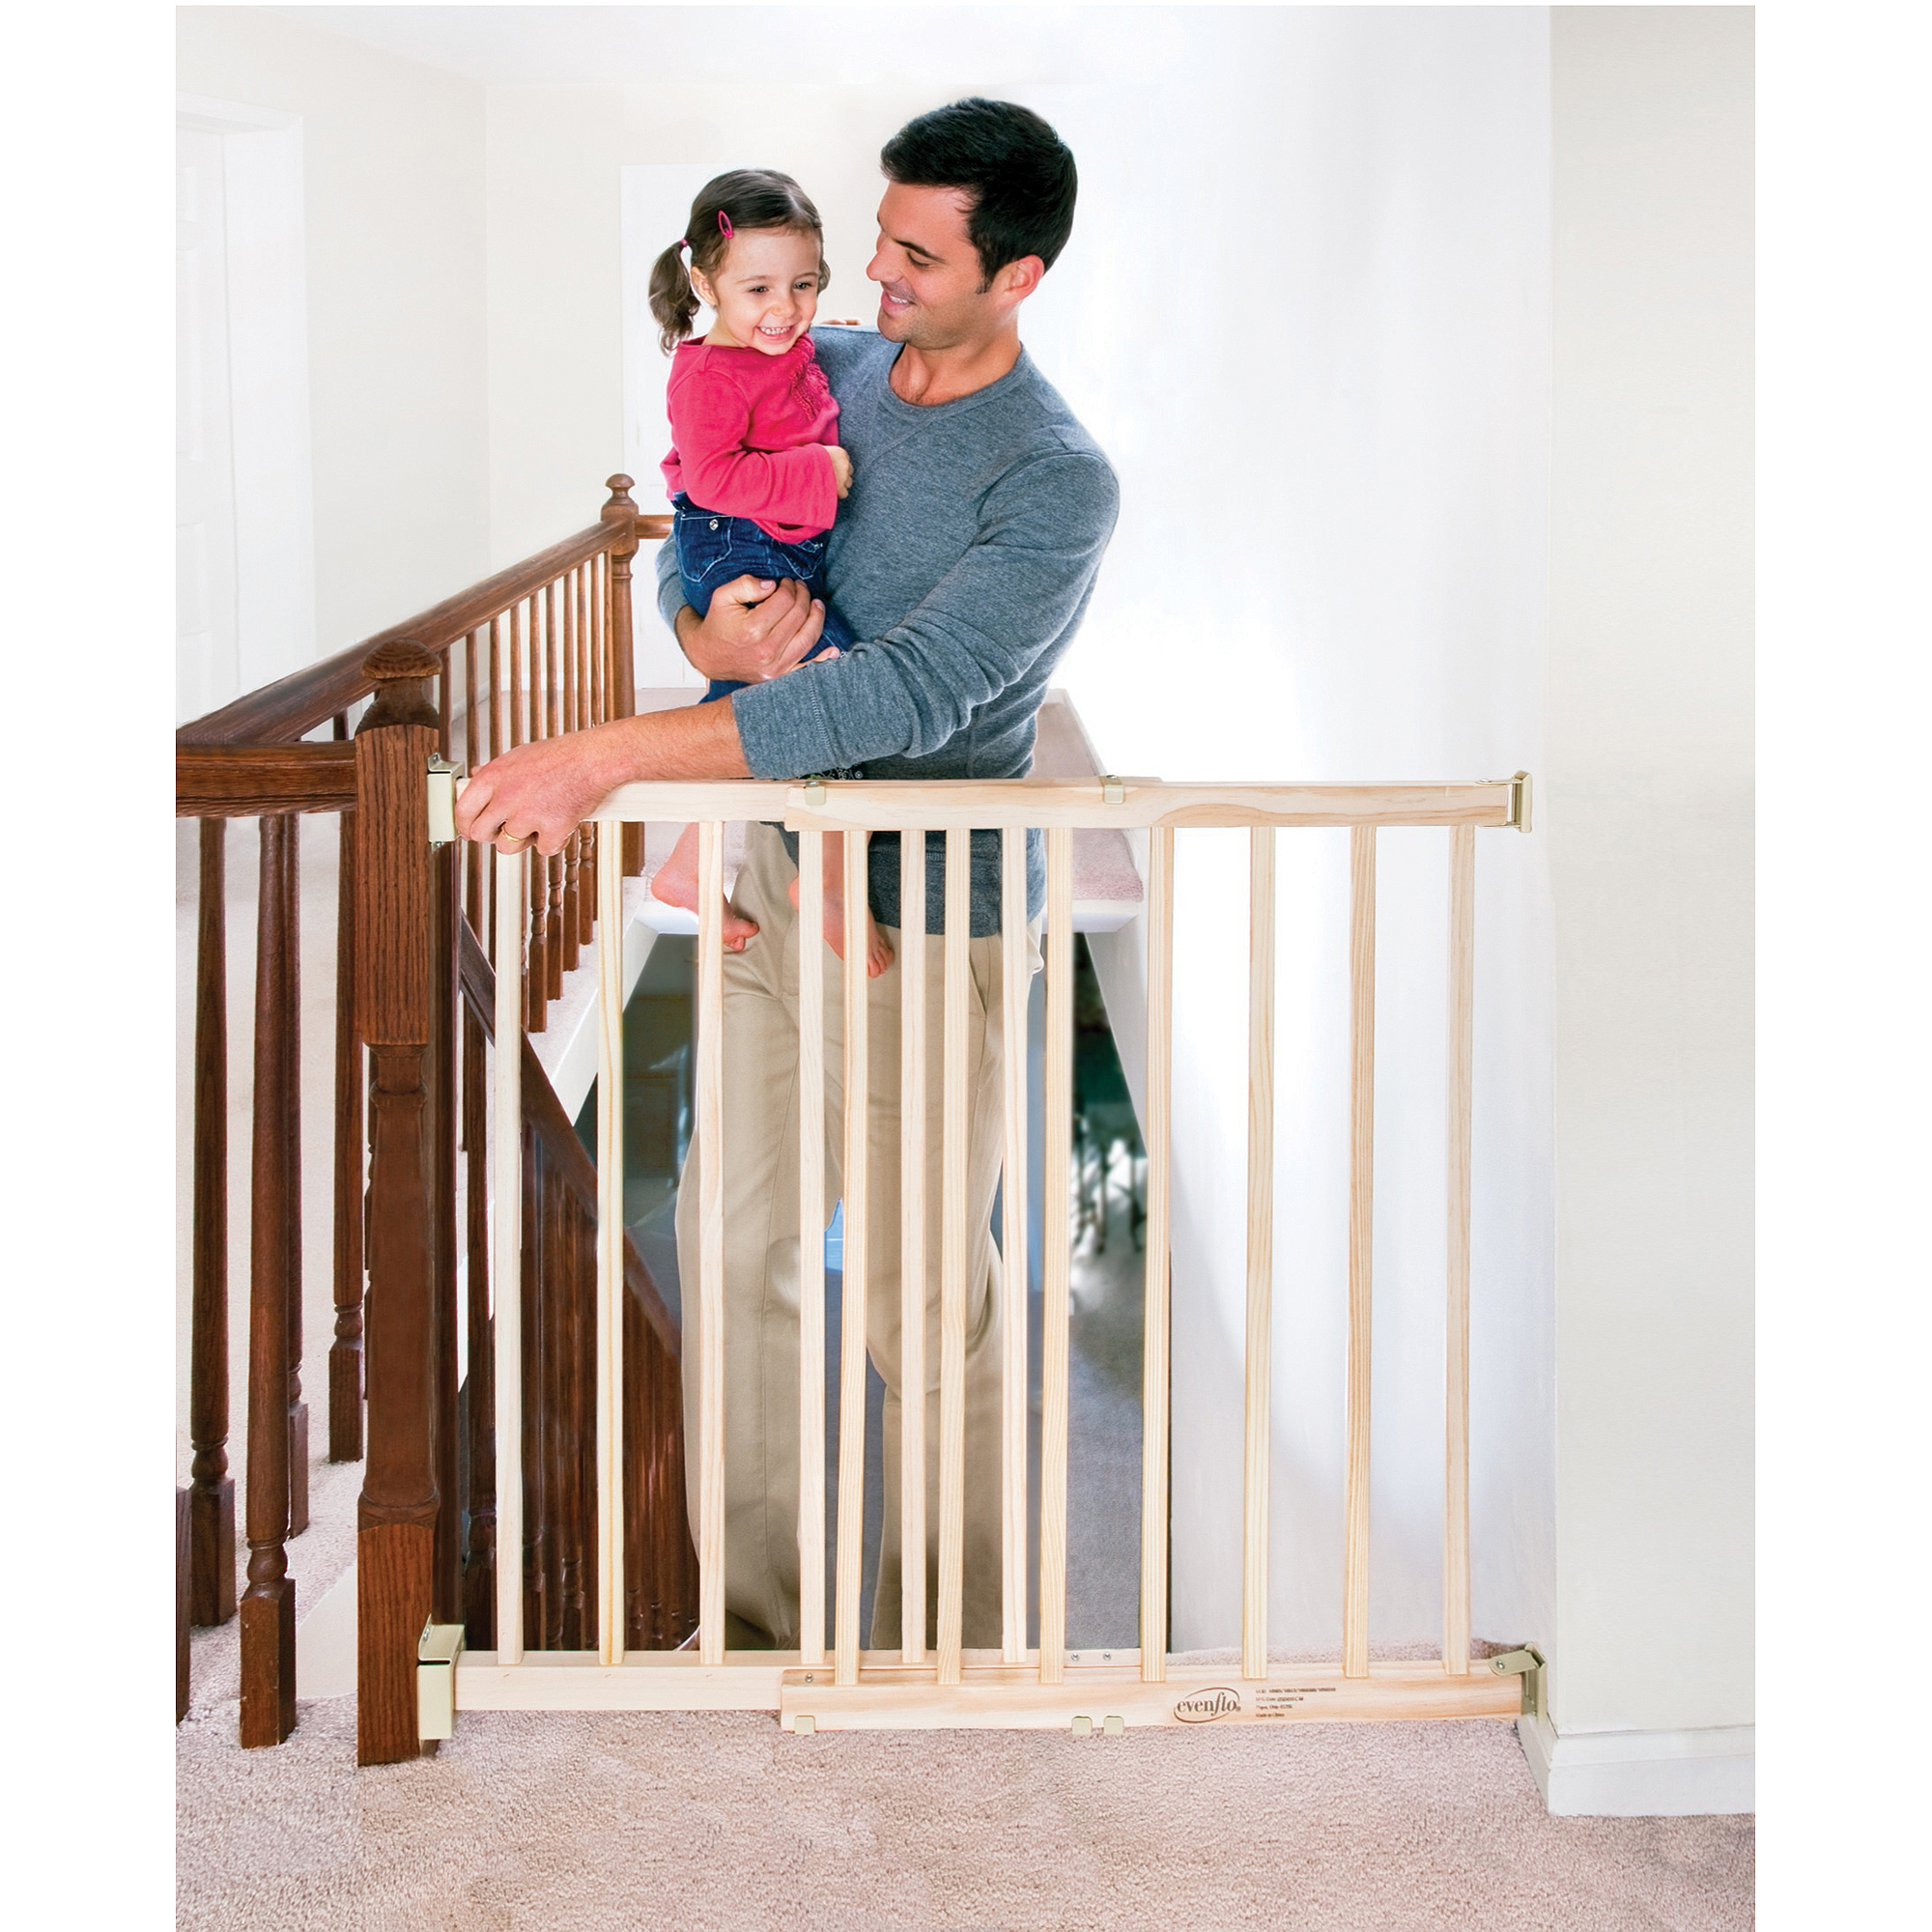 evenflo extra tall top of stairway baby gate  with swing  - evenflo extra tall top of stairway baby gate  with swing door walmartcom